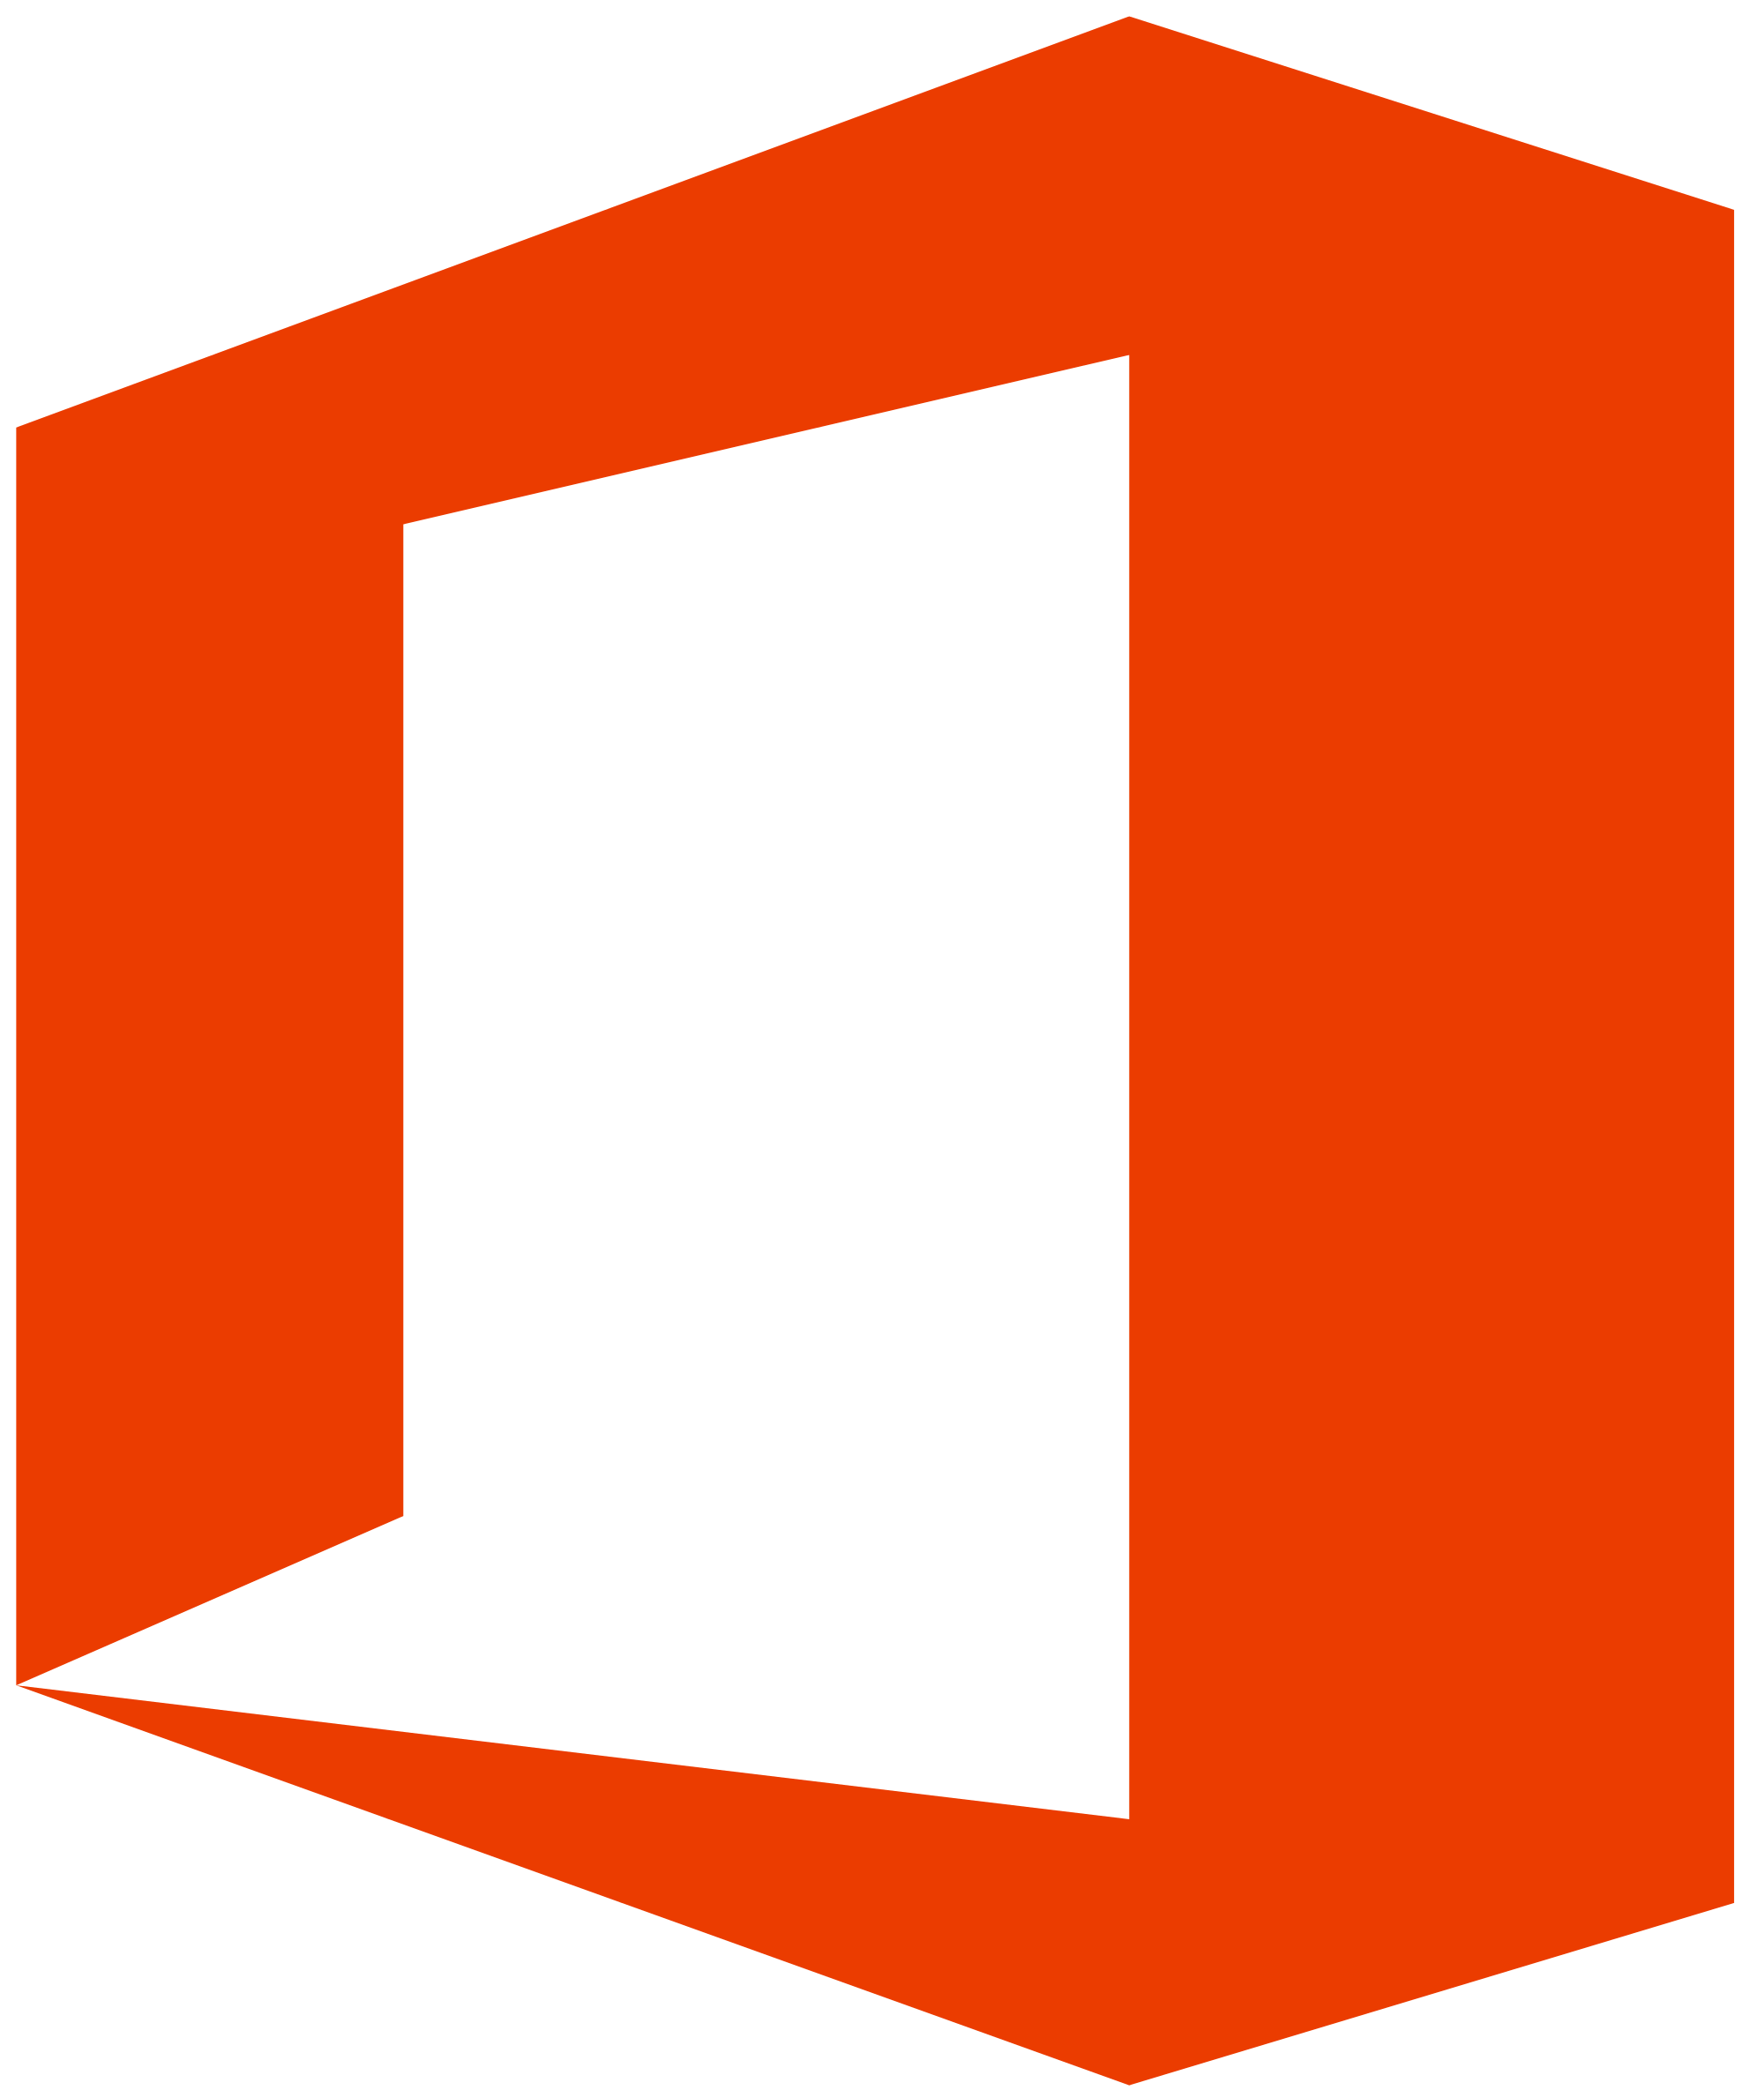 Microsoft Office 2013 Professional Plus How To Change 32 Bit Office Professional Plus 2013 To 64 Bit Jdrch